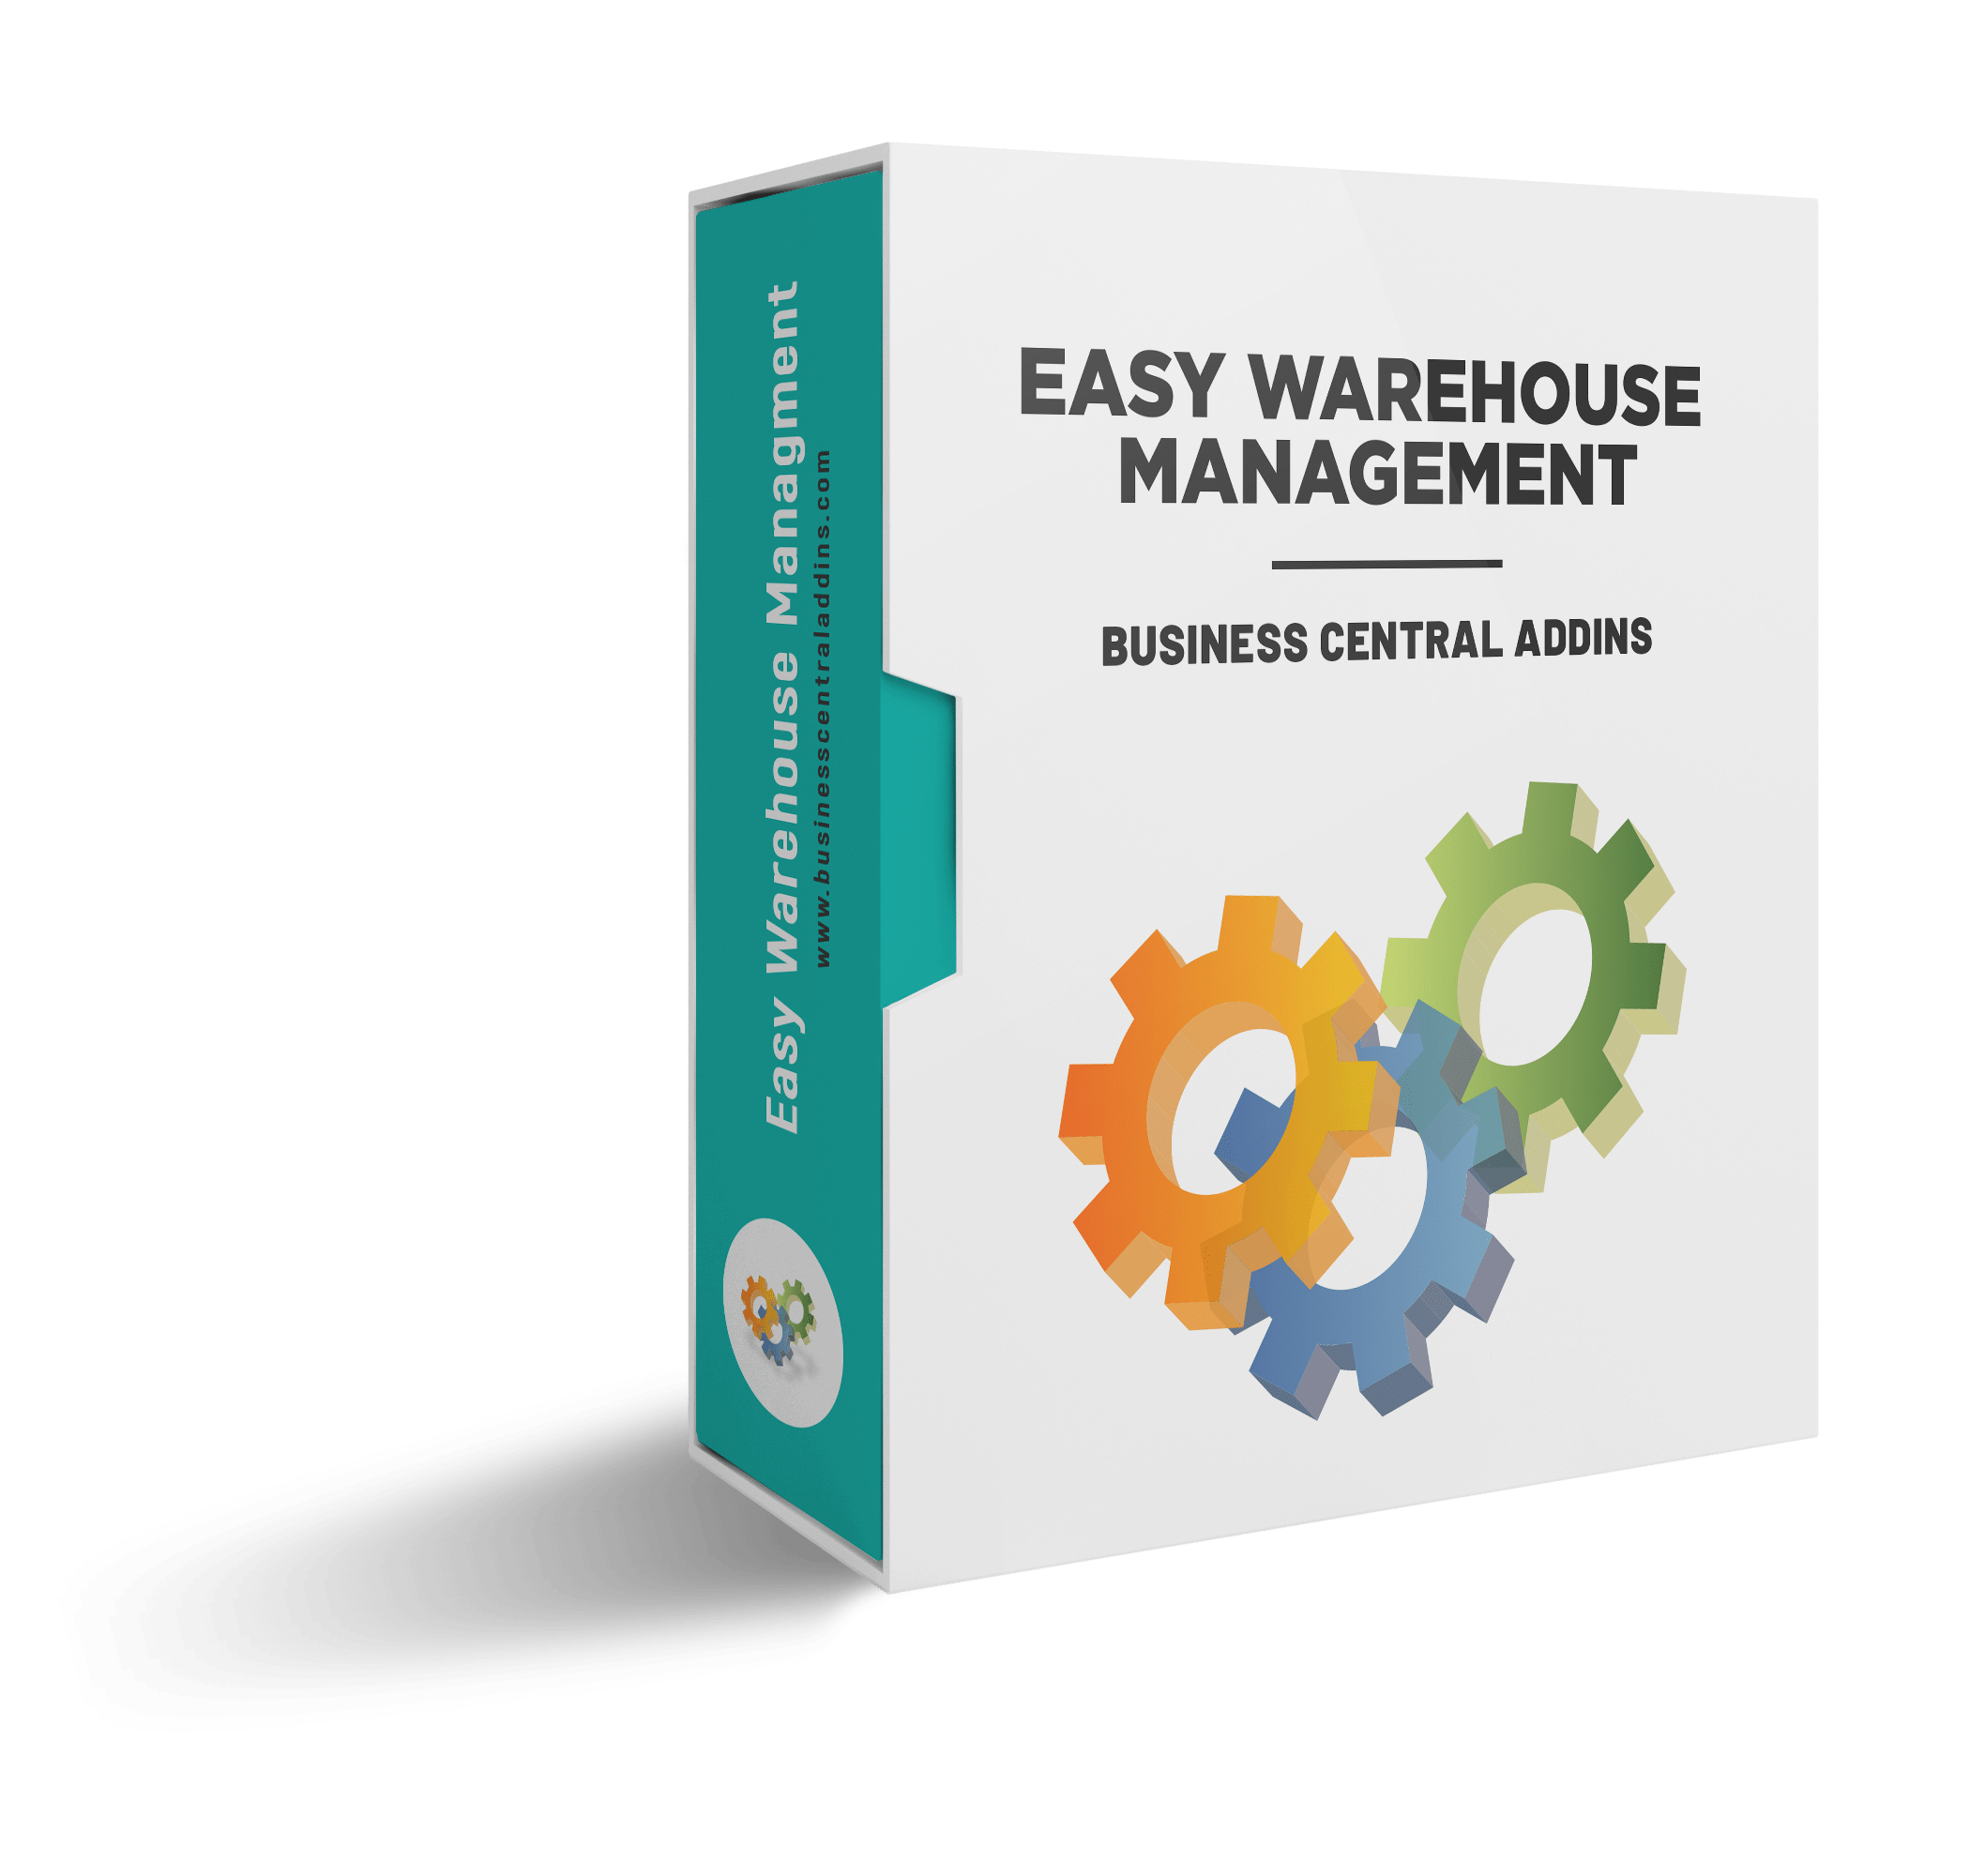 Easy Warehouse Management (002)